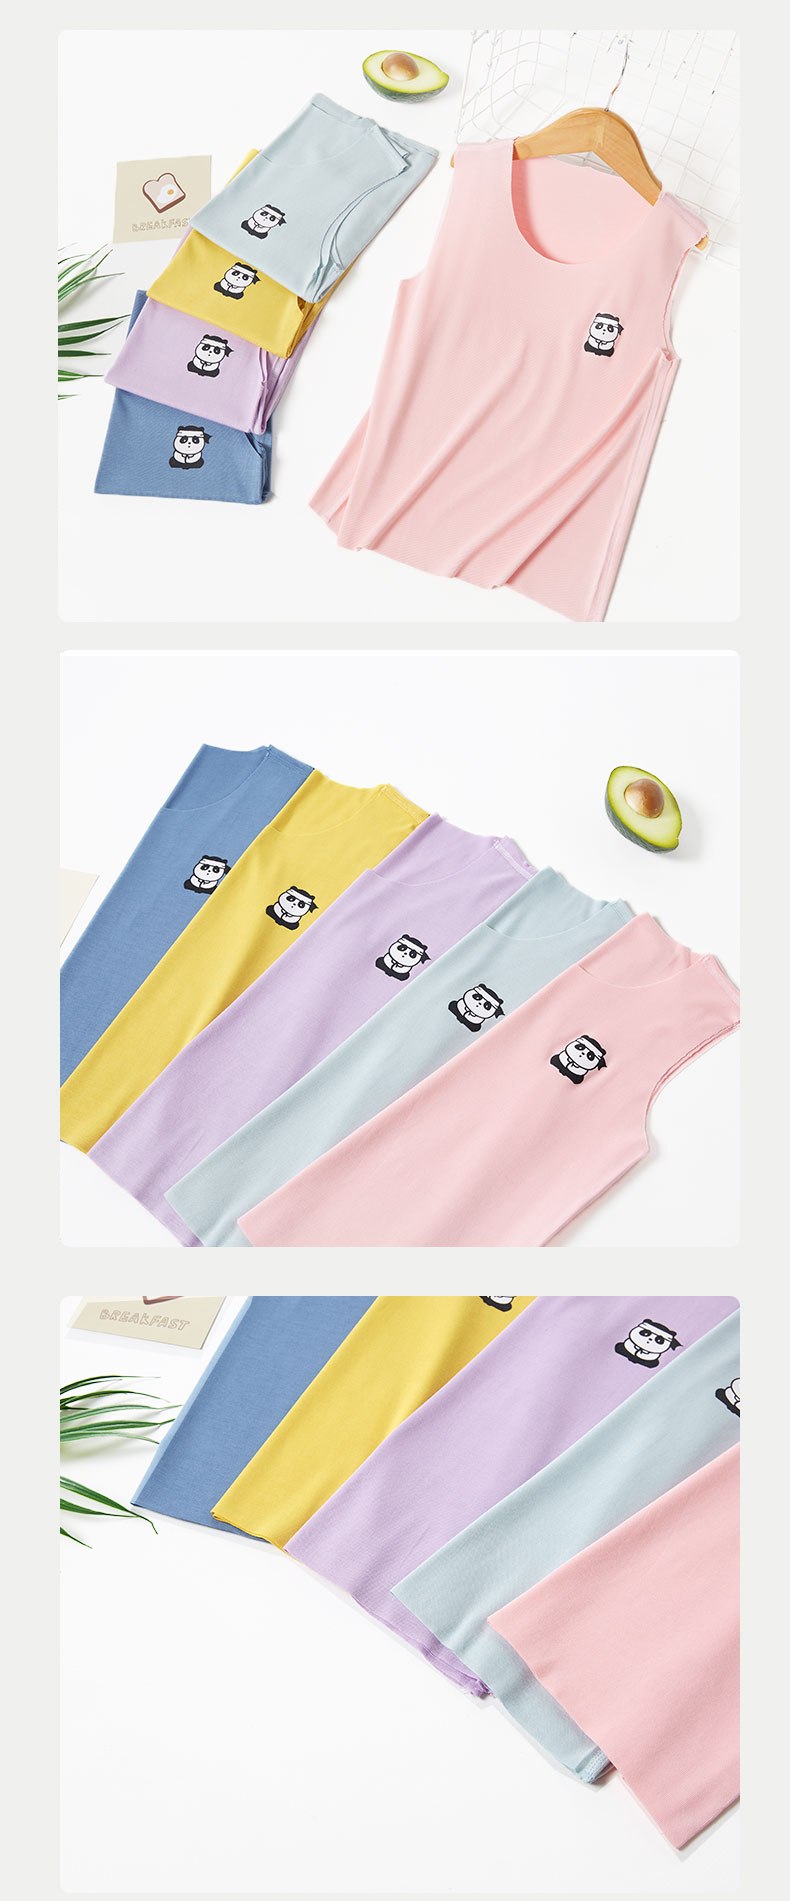 Hd8cff3011c8144709438dfe798c9ba61s NANJIREN child s Summer Sleeveless Tank s For Child Modal Casual T Shirt Cool Breathable Solid Color Elasticity Base Shirt